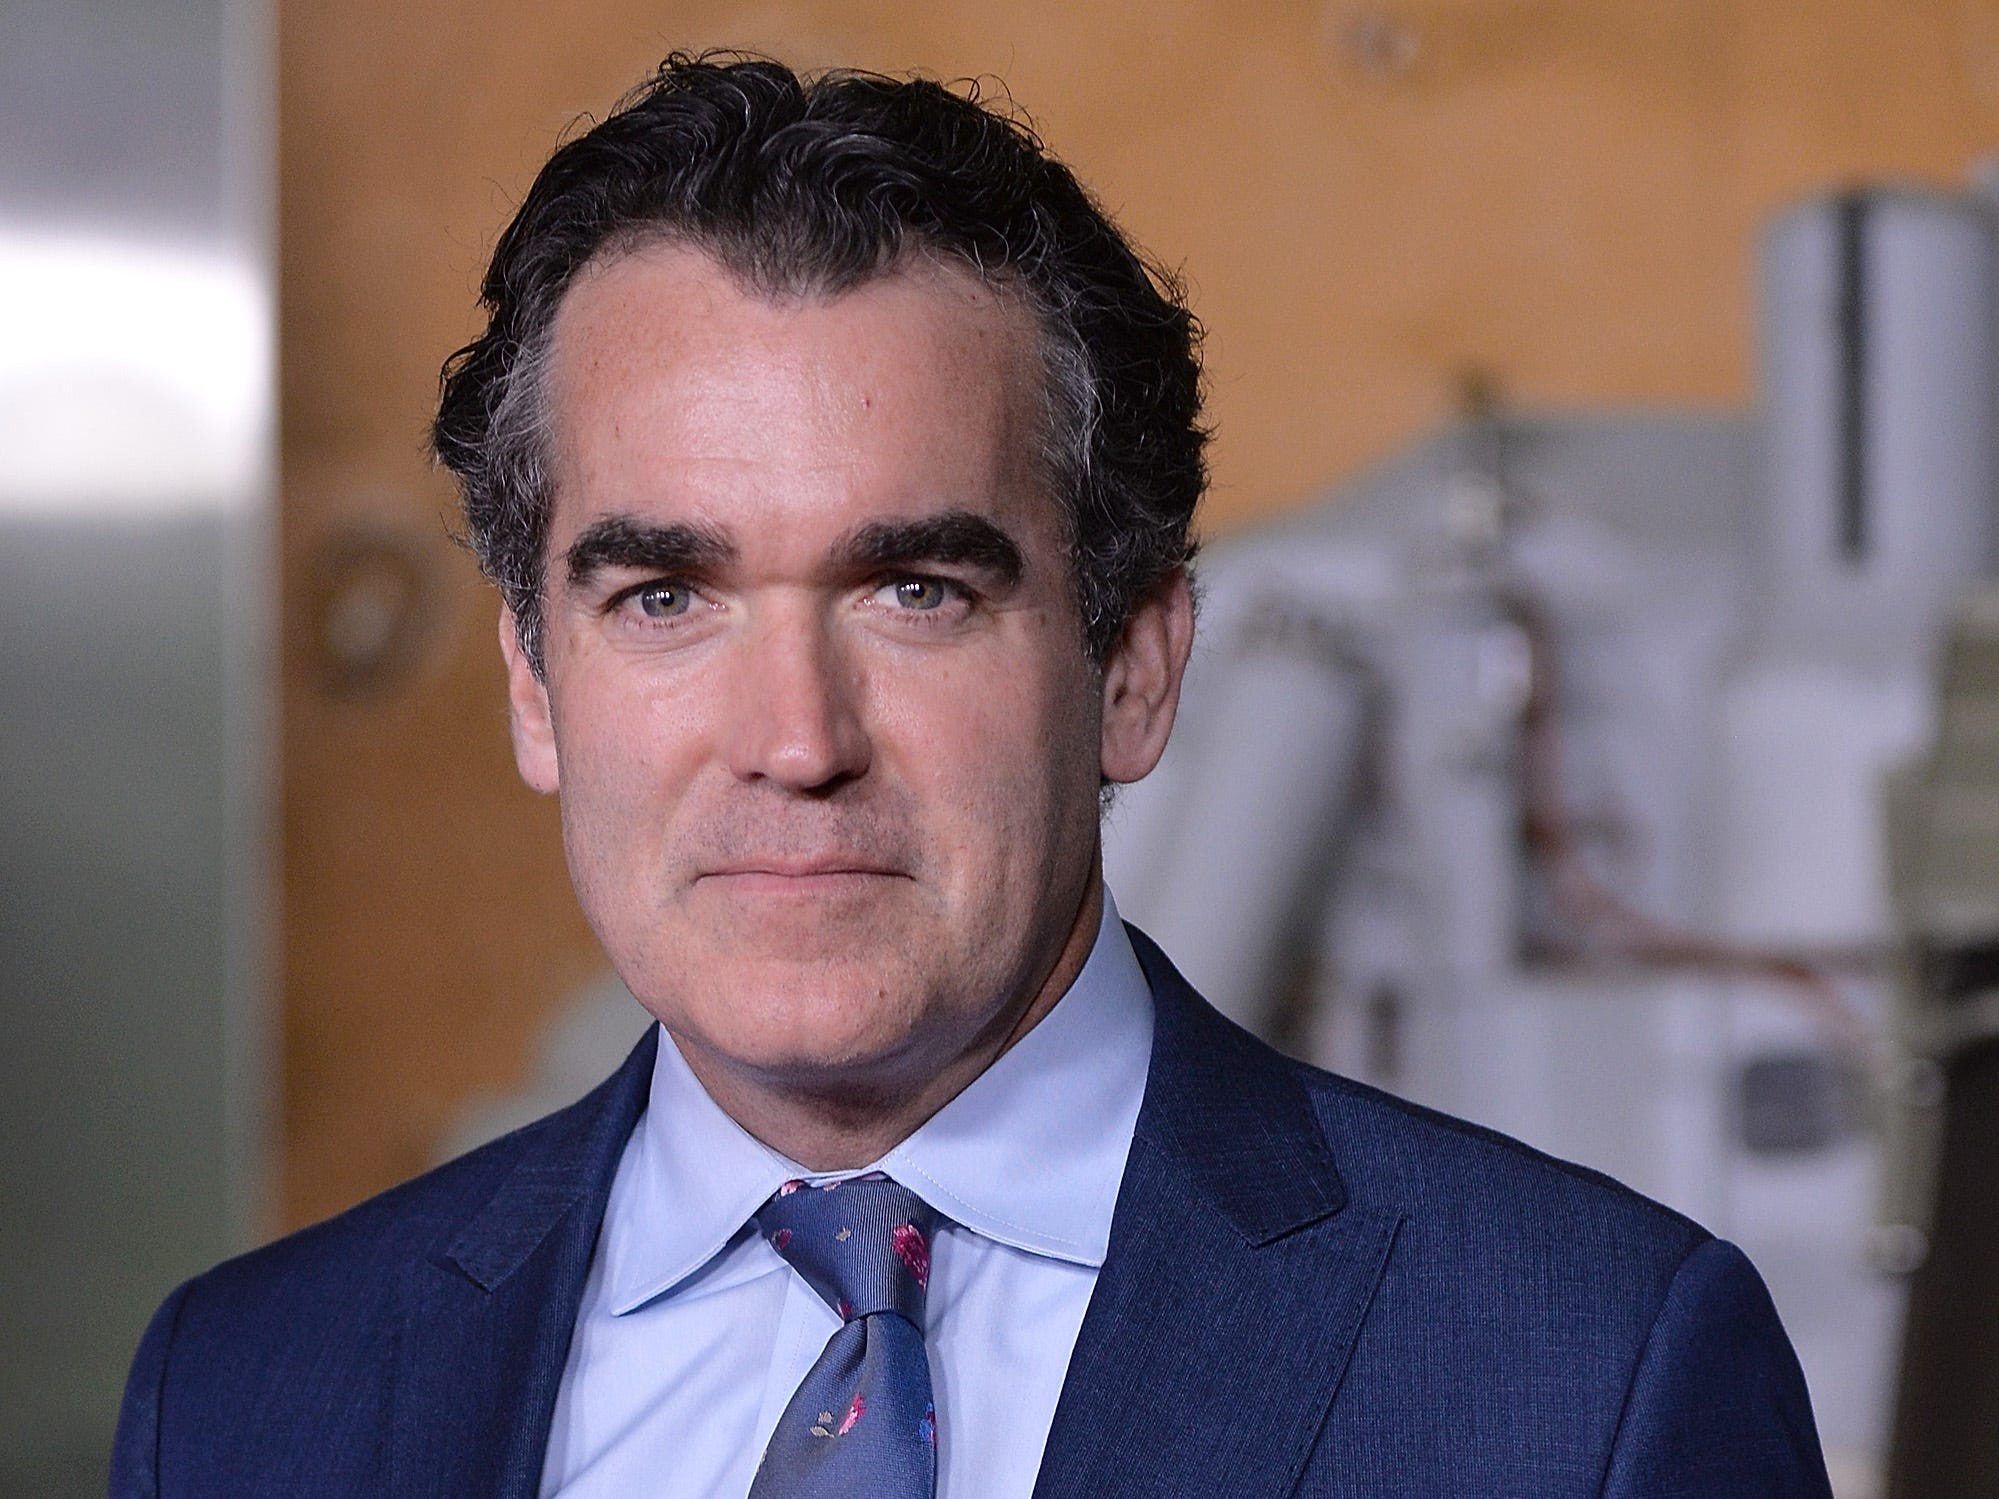 """WASHINGTON, DC - OCTOBER 04:  Actor Brian D'Arcy James attends the """"First Man"""" premiere at the National Air and Space Museum on October 4, 2018 in Washington, DC.  (Photo by Shannon Finney/Getty Images) ORG XMIT: 775234726 ORIG FILE ID: 1045739410"""